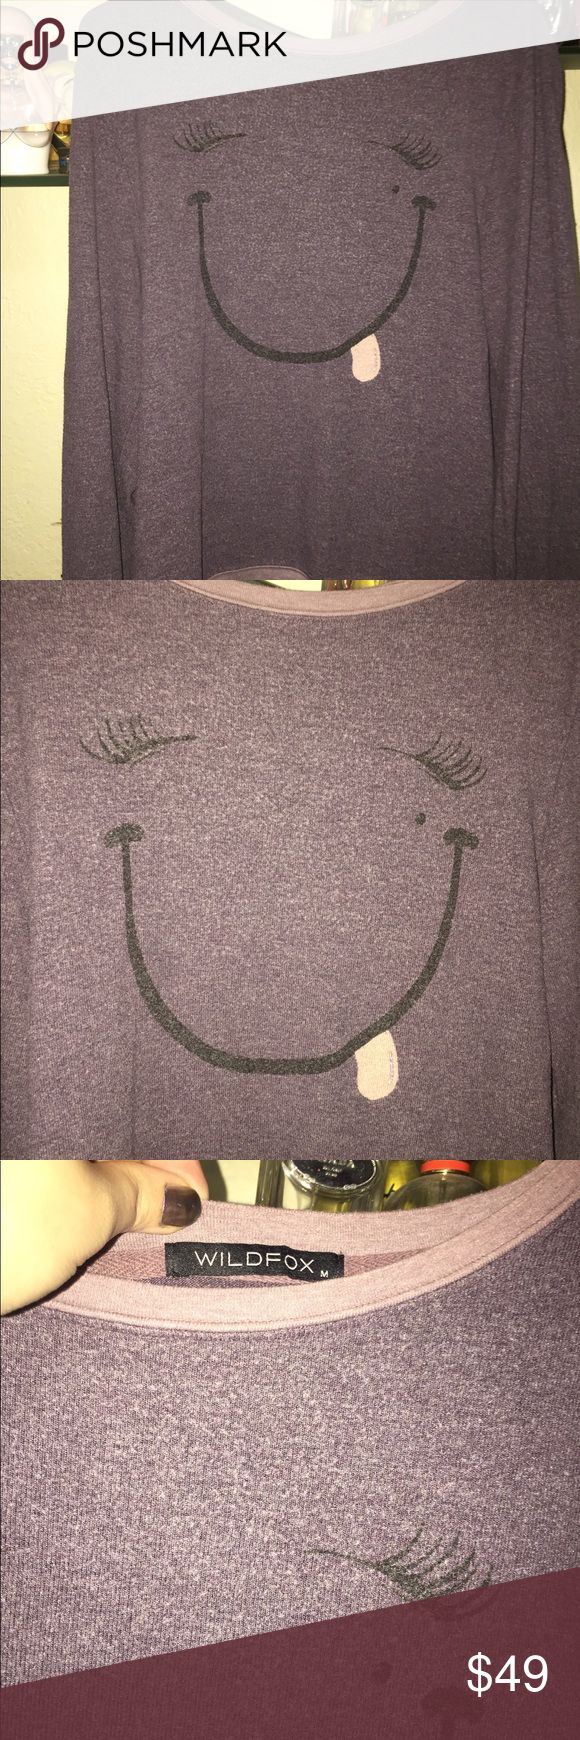 Smiley Wildfox Saks off 5th jumper Super cute purple smiley Wildfox jumper in good condition. The color is closer to the 2nd two than the 1st one Wildfox Tops Sweatshirts & Hoodies